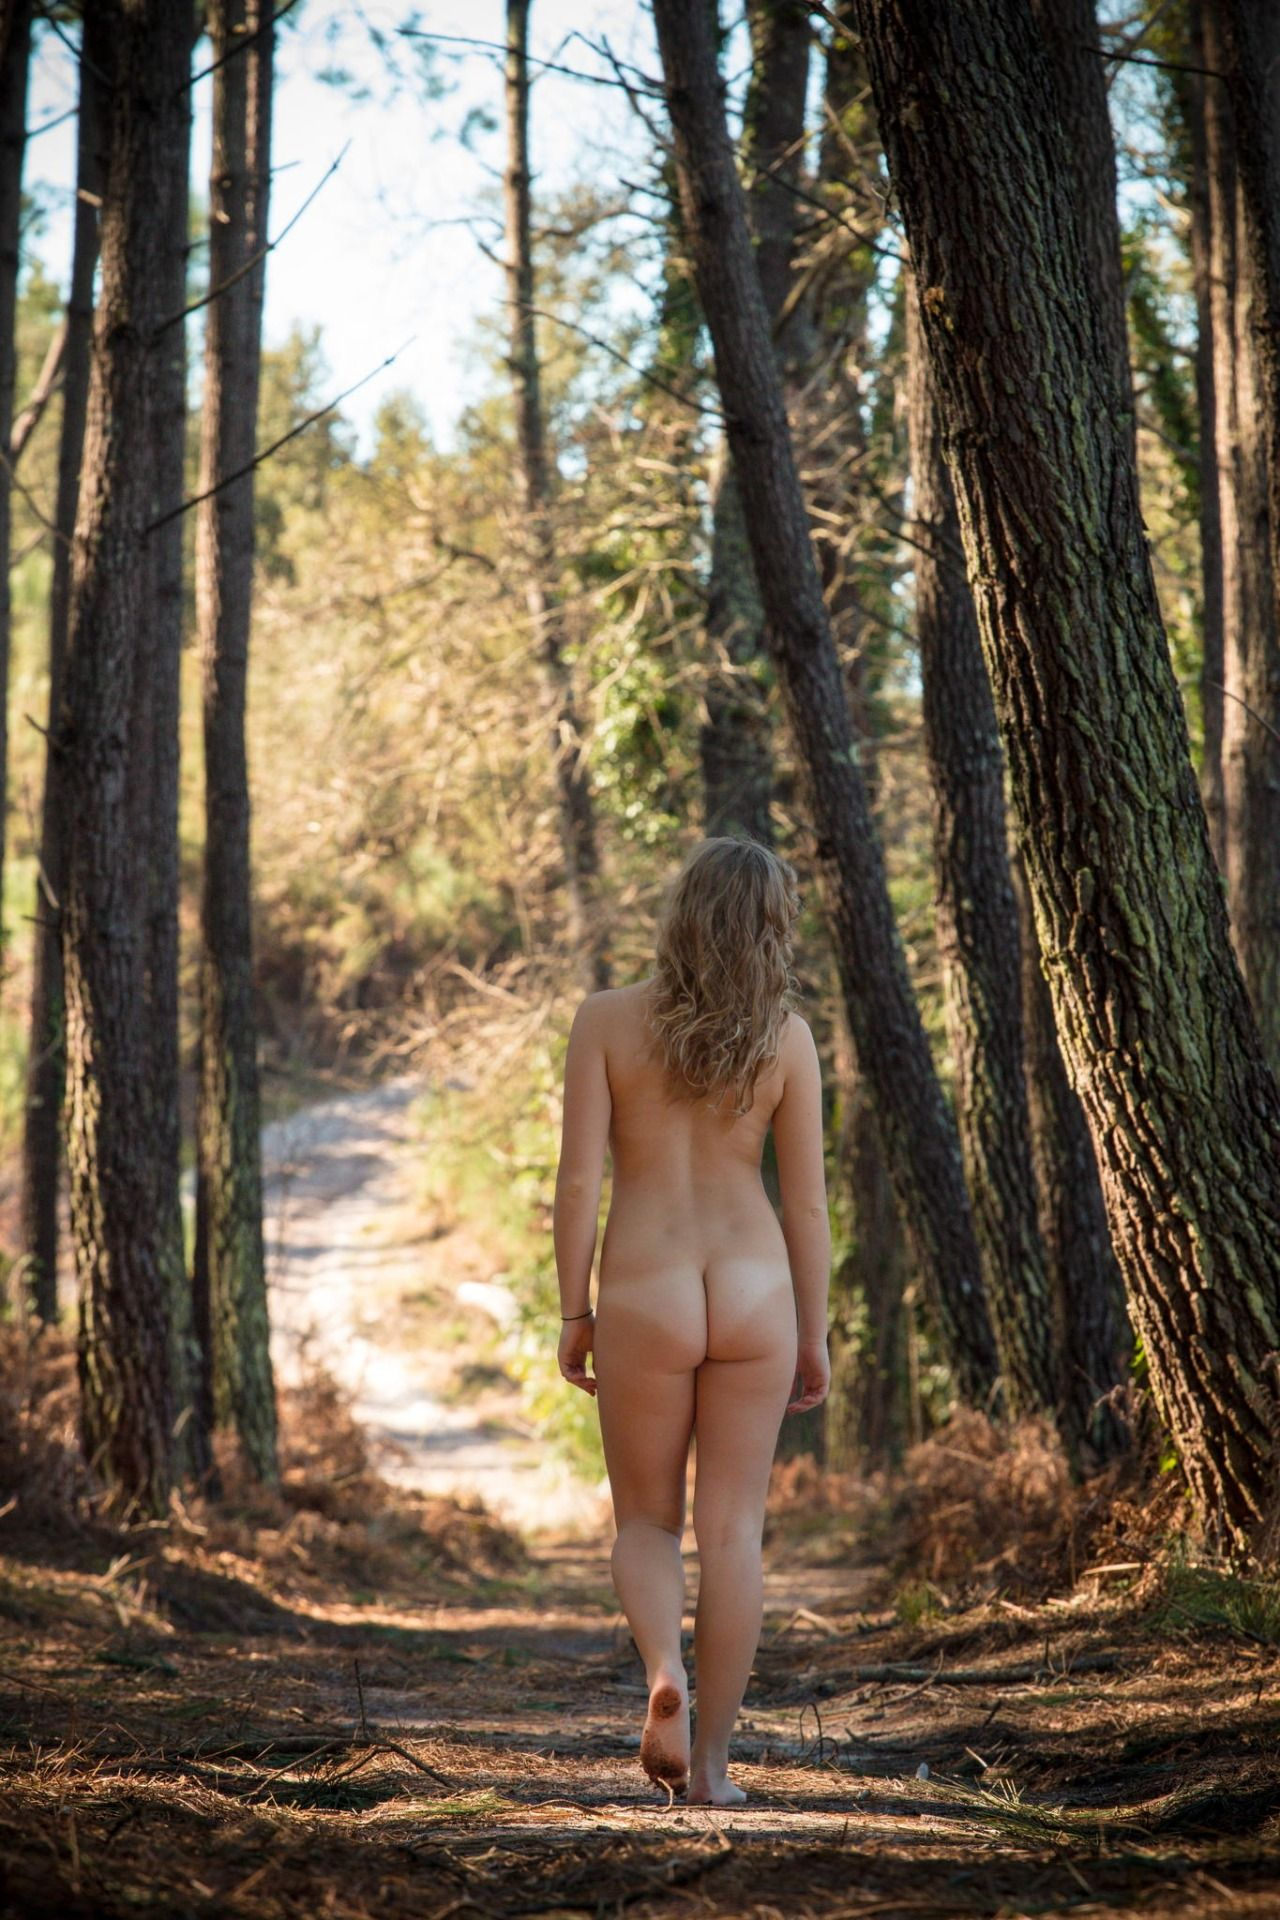 Nude Hiking And Camping Photo